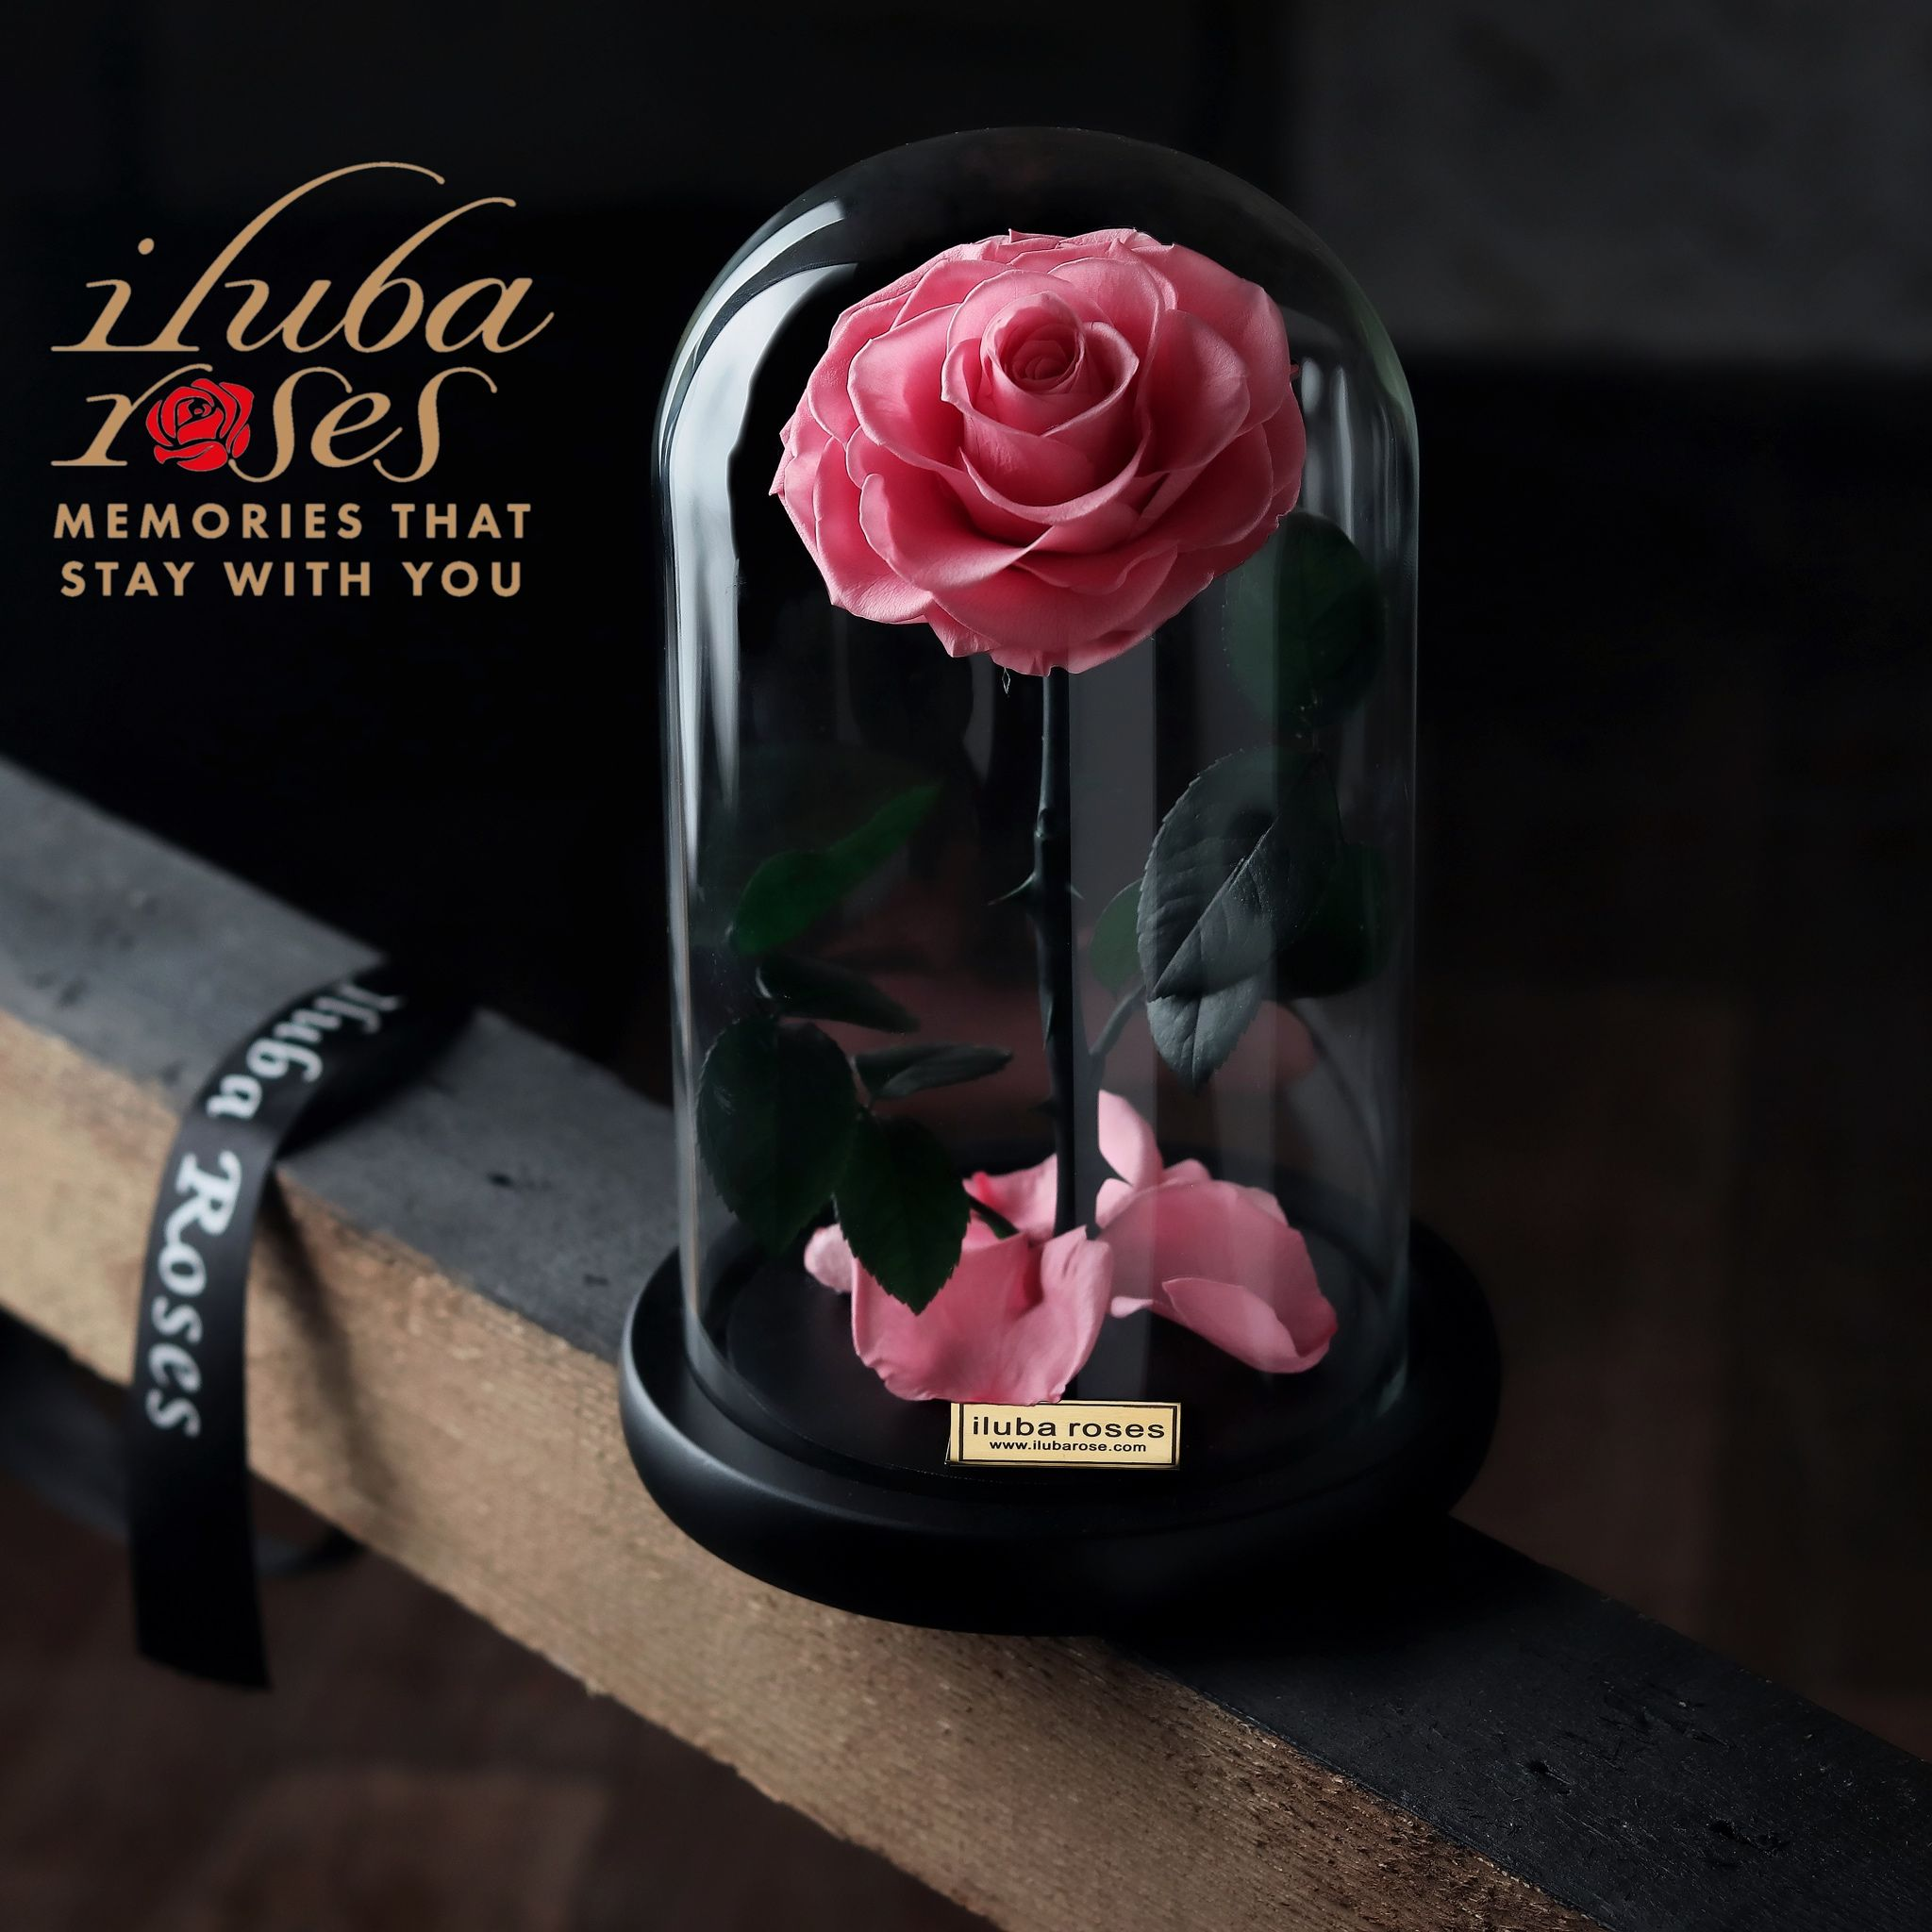 Iluba Roses ايلوبا روزز Gifts Rose In A Glass Pink Rose Flower